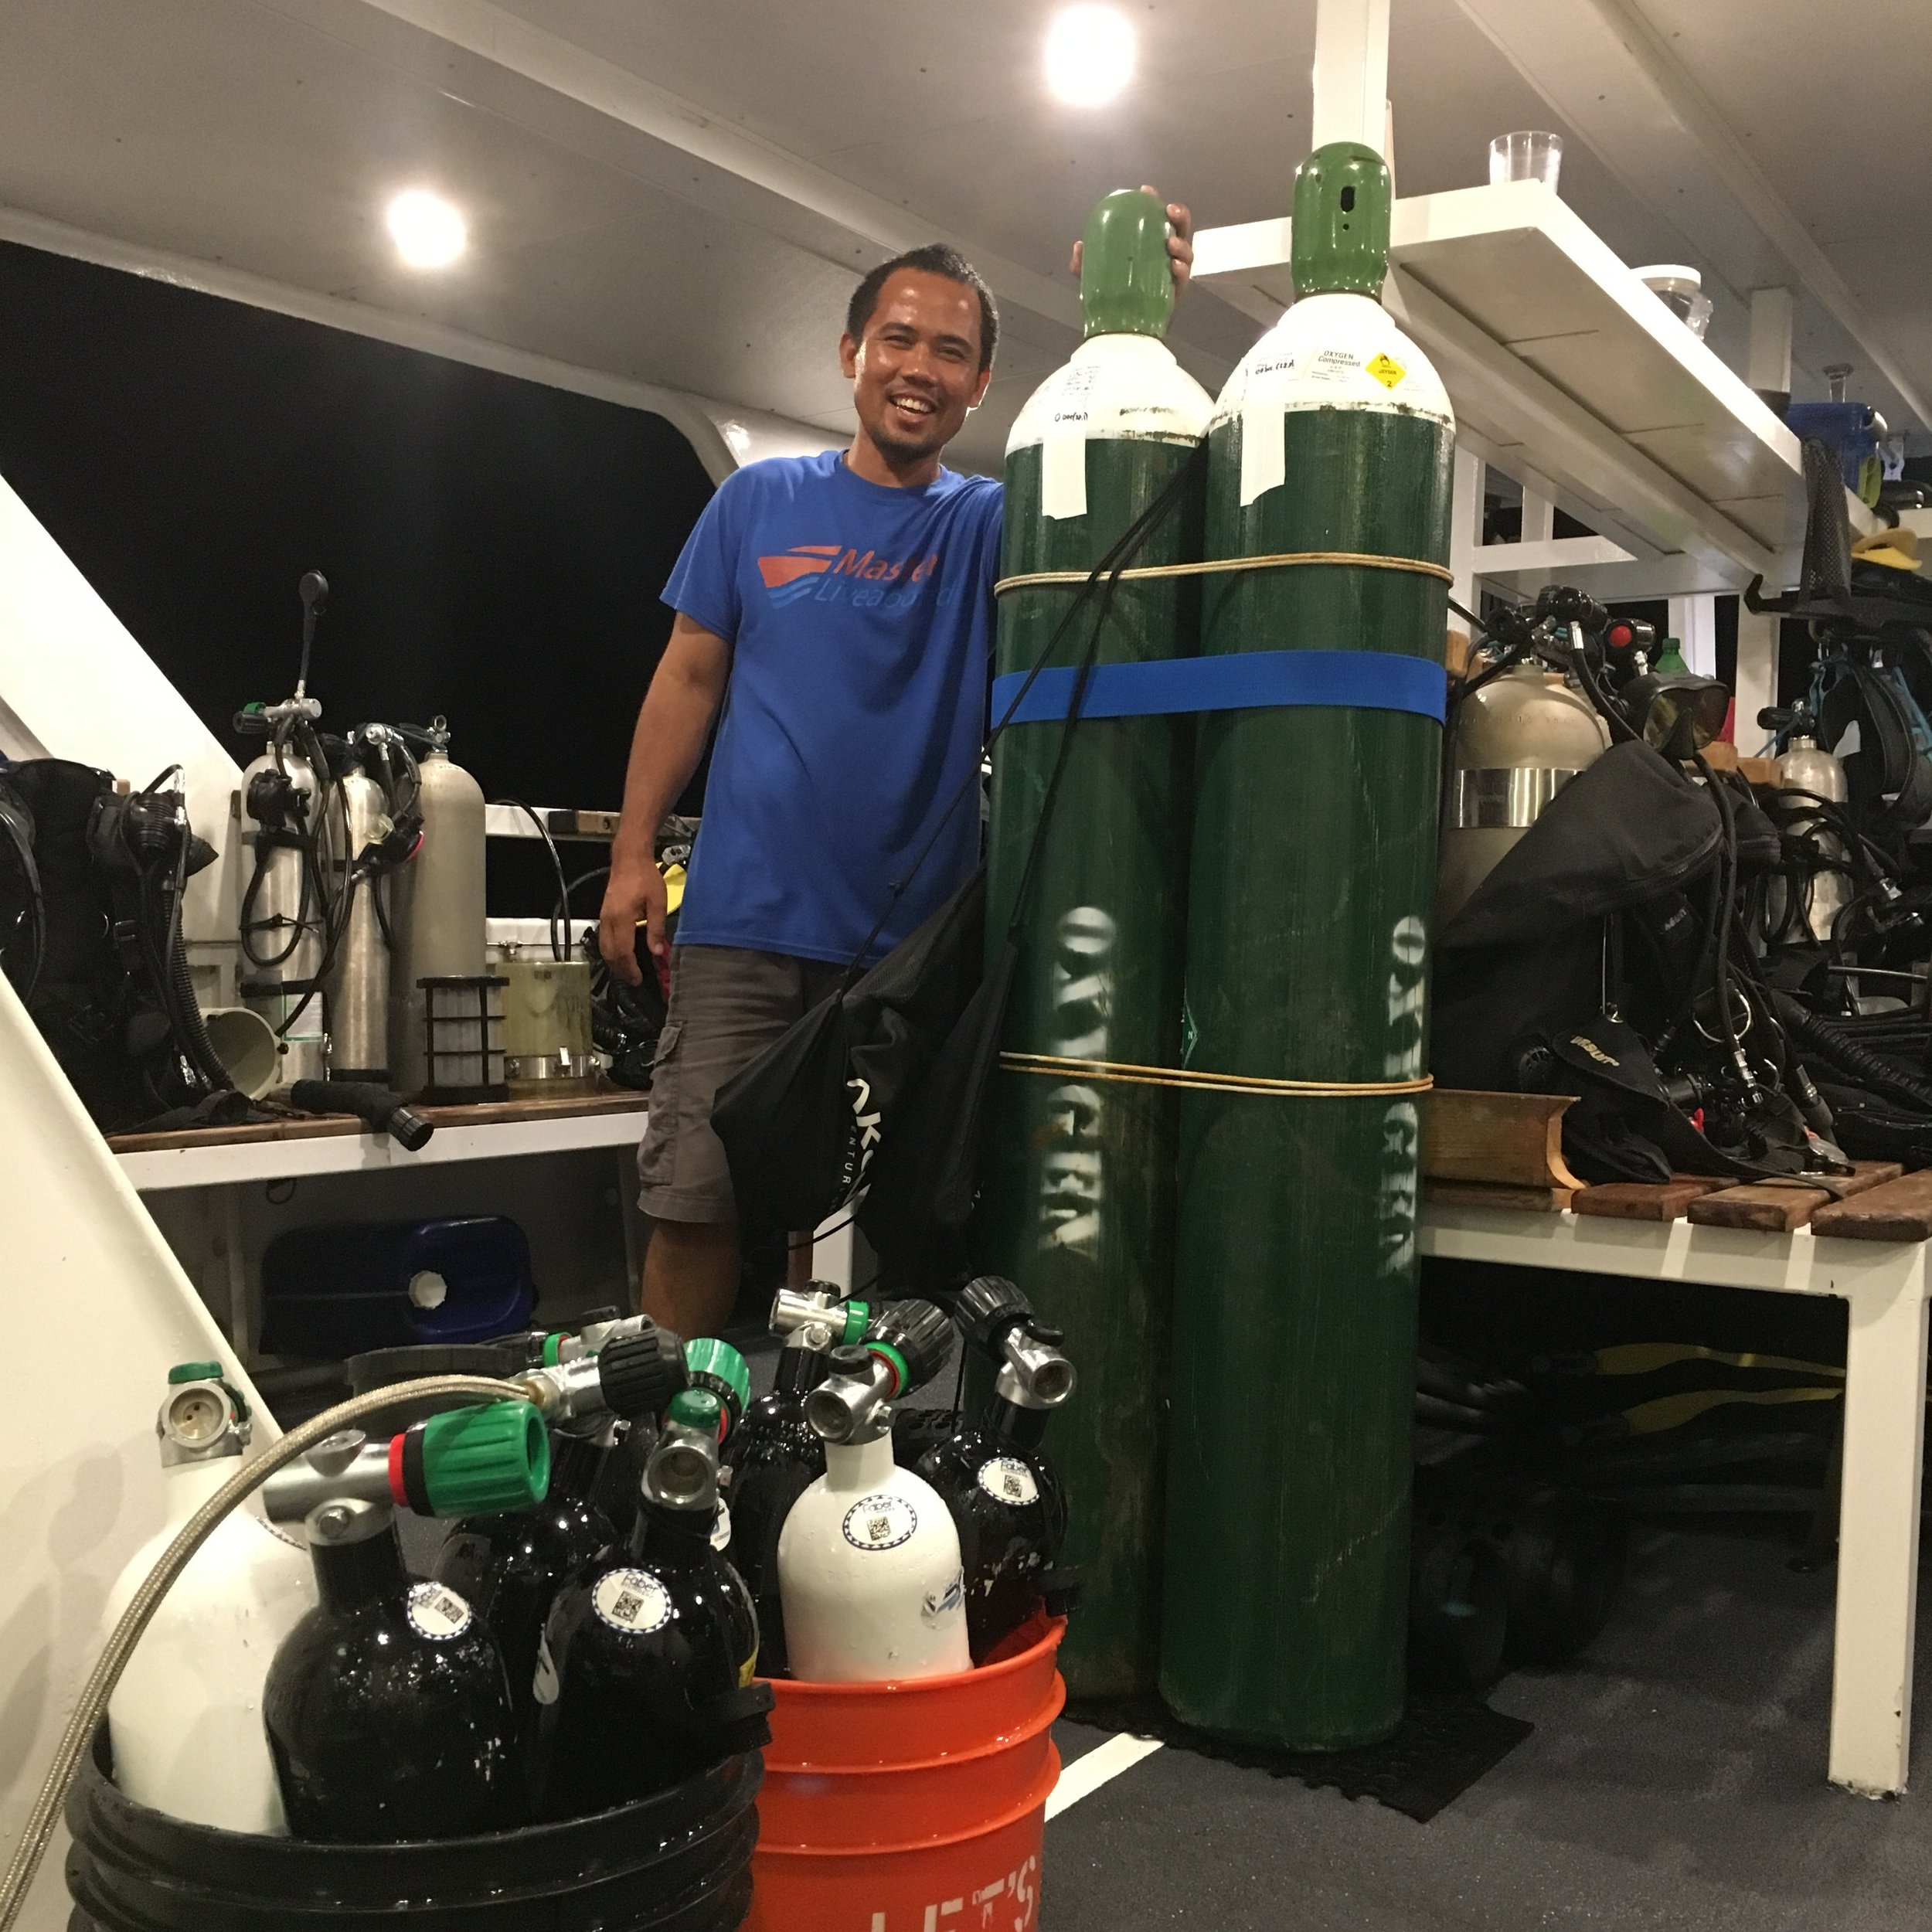 CERTIFIED GAS BLENDERS - All our gas-blenders have been trained by our expedition leader Aron, who has overseen several high profile blending stations around the world.